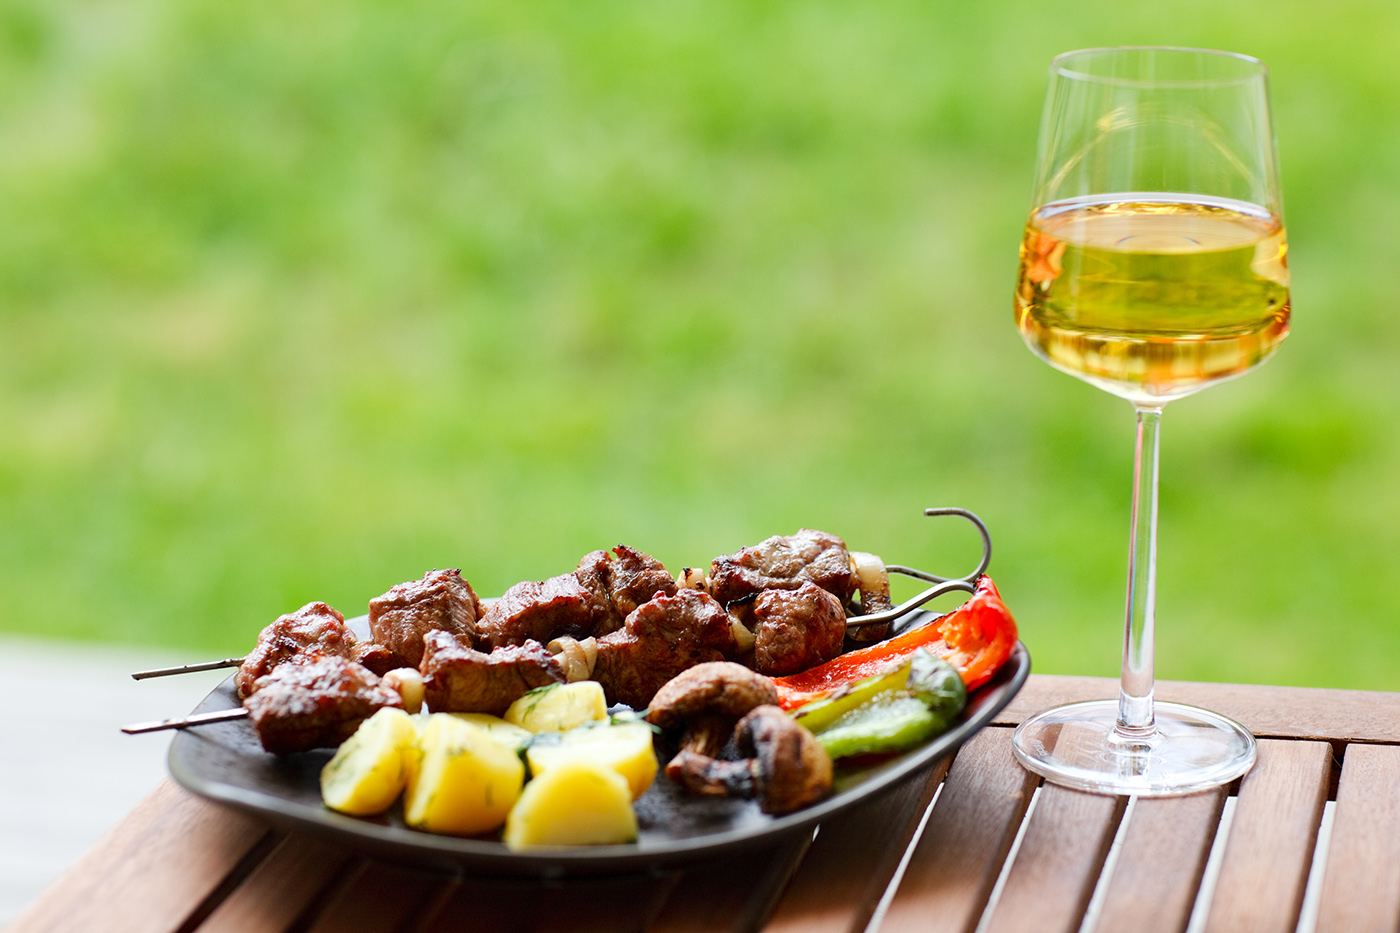 Kebab grilled food and wine 50160